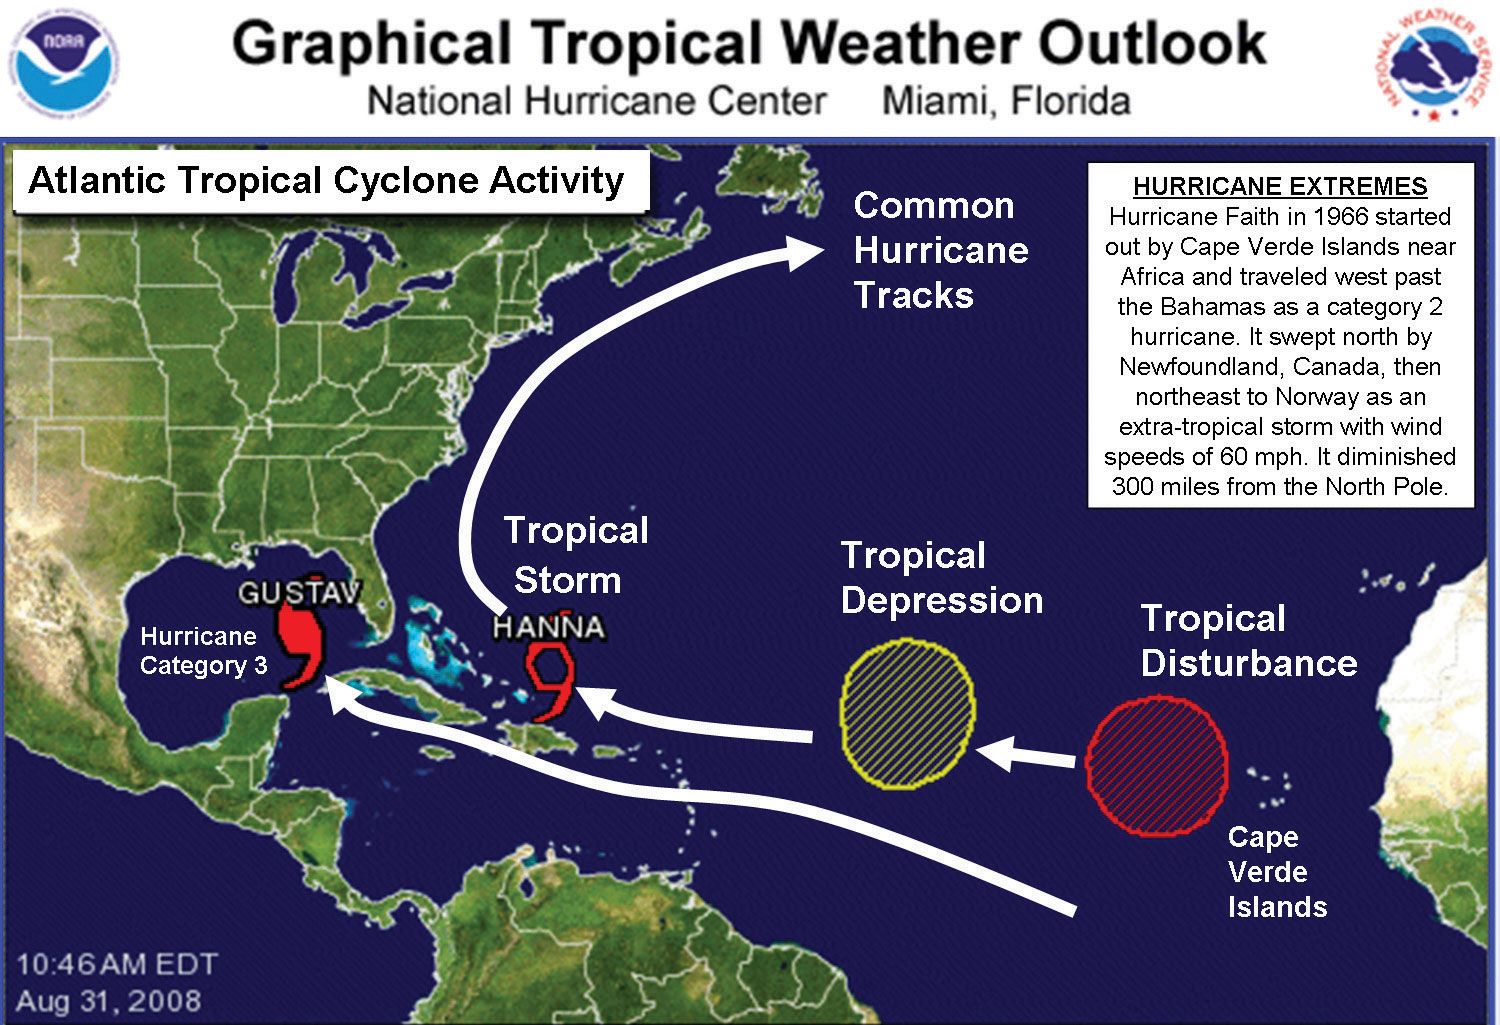 hurricanes tropical cyclone and hurricane camille hurricane essay Chapter 26 hurricane camille hurricane camille was a disastrous storm with catastrophic damage including the destruction of many towns and lives even after.